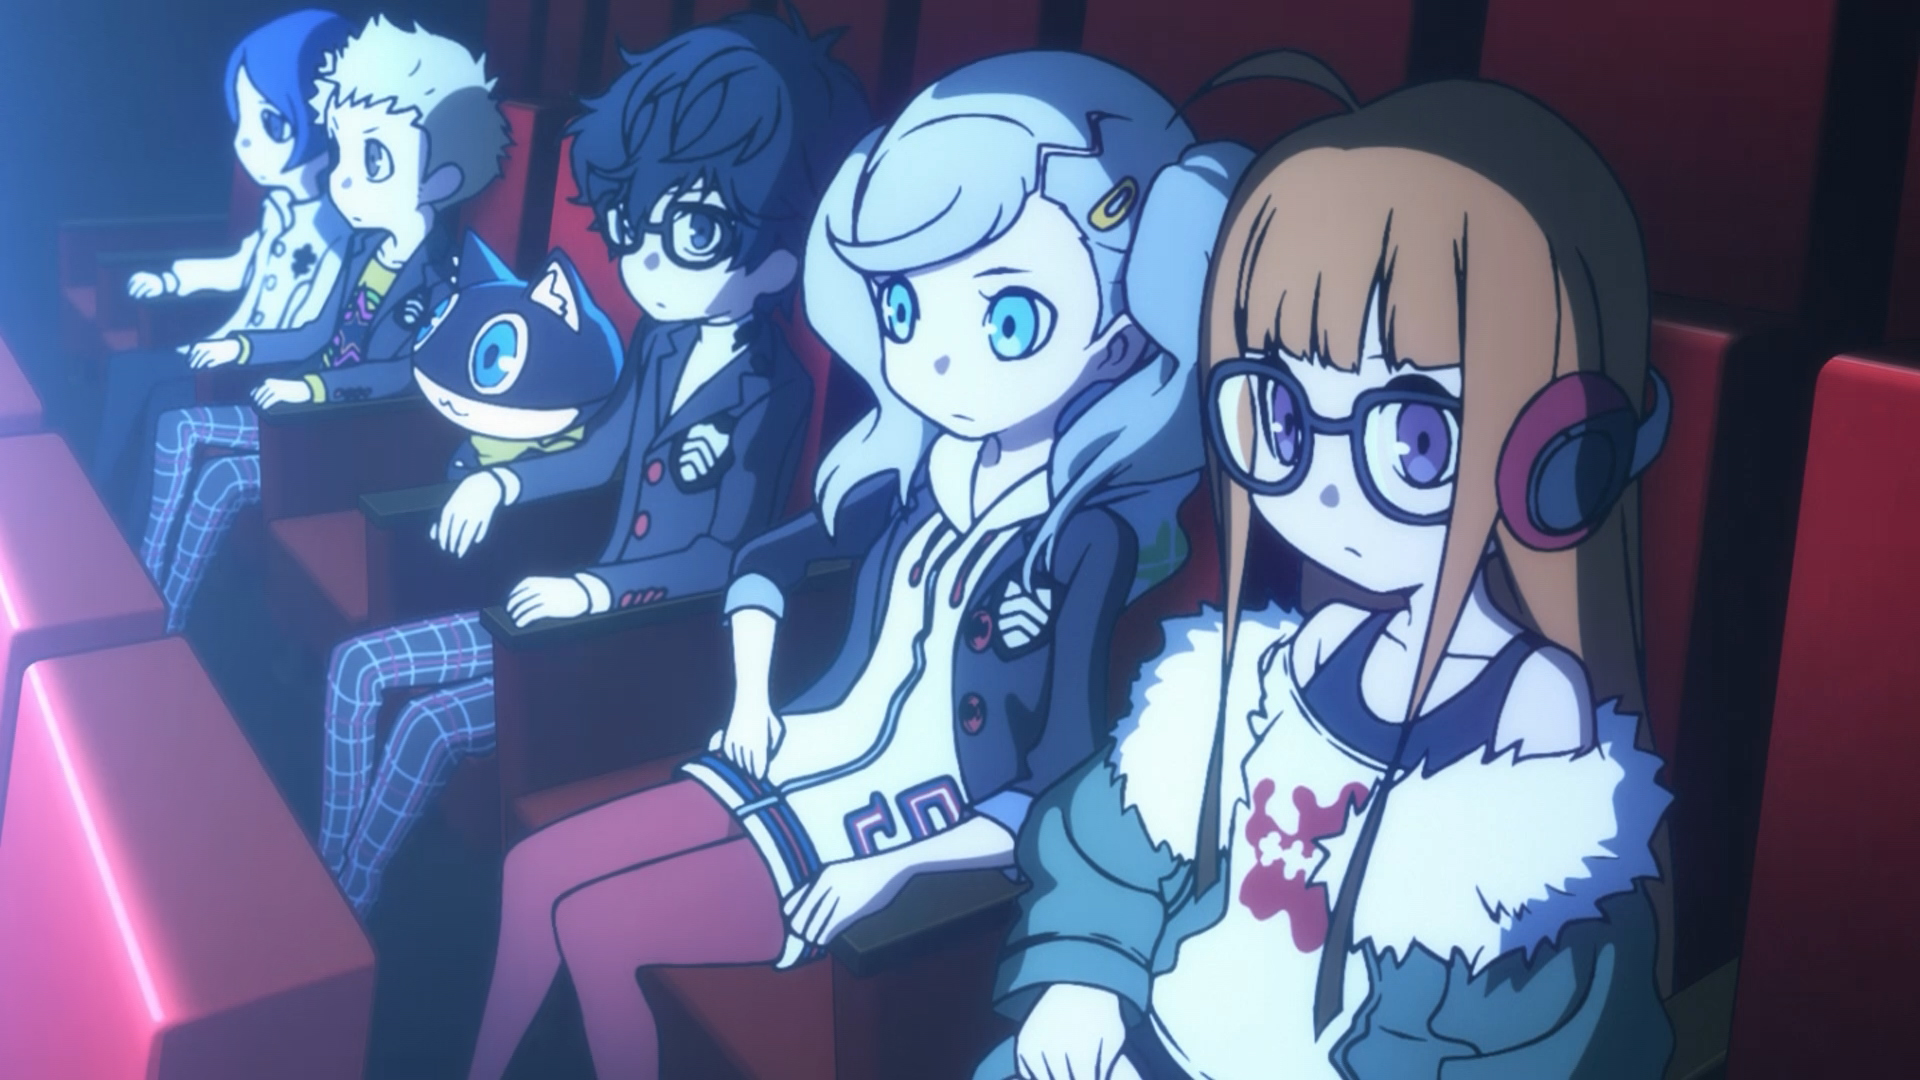 Die Hauptcharaktere von Persona Q2: New Cinema Labyrinth